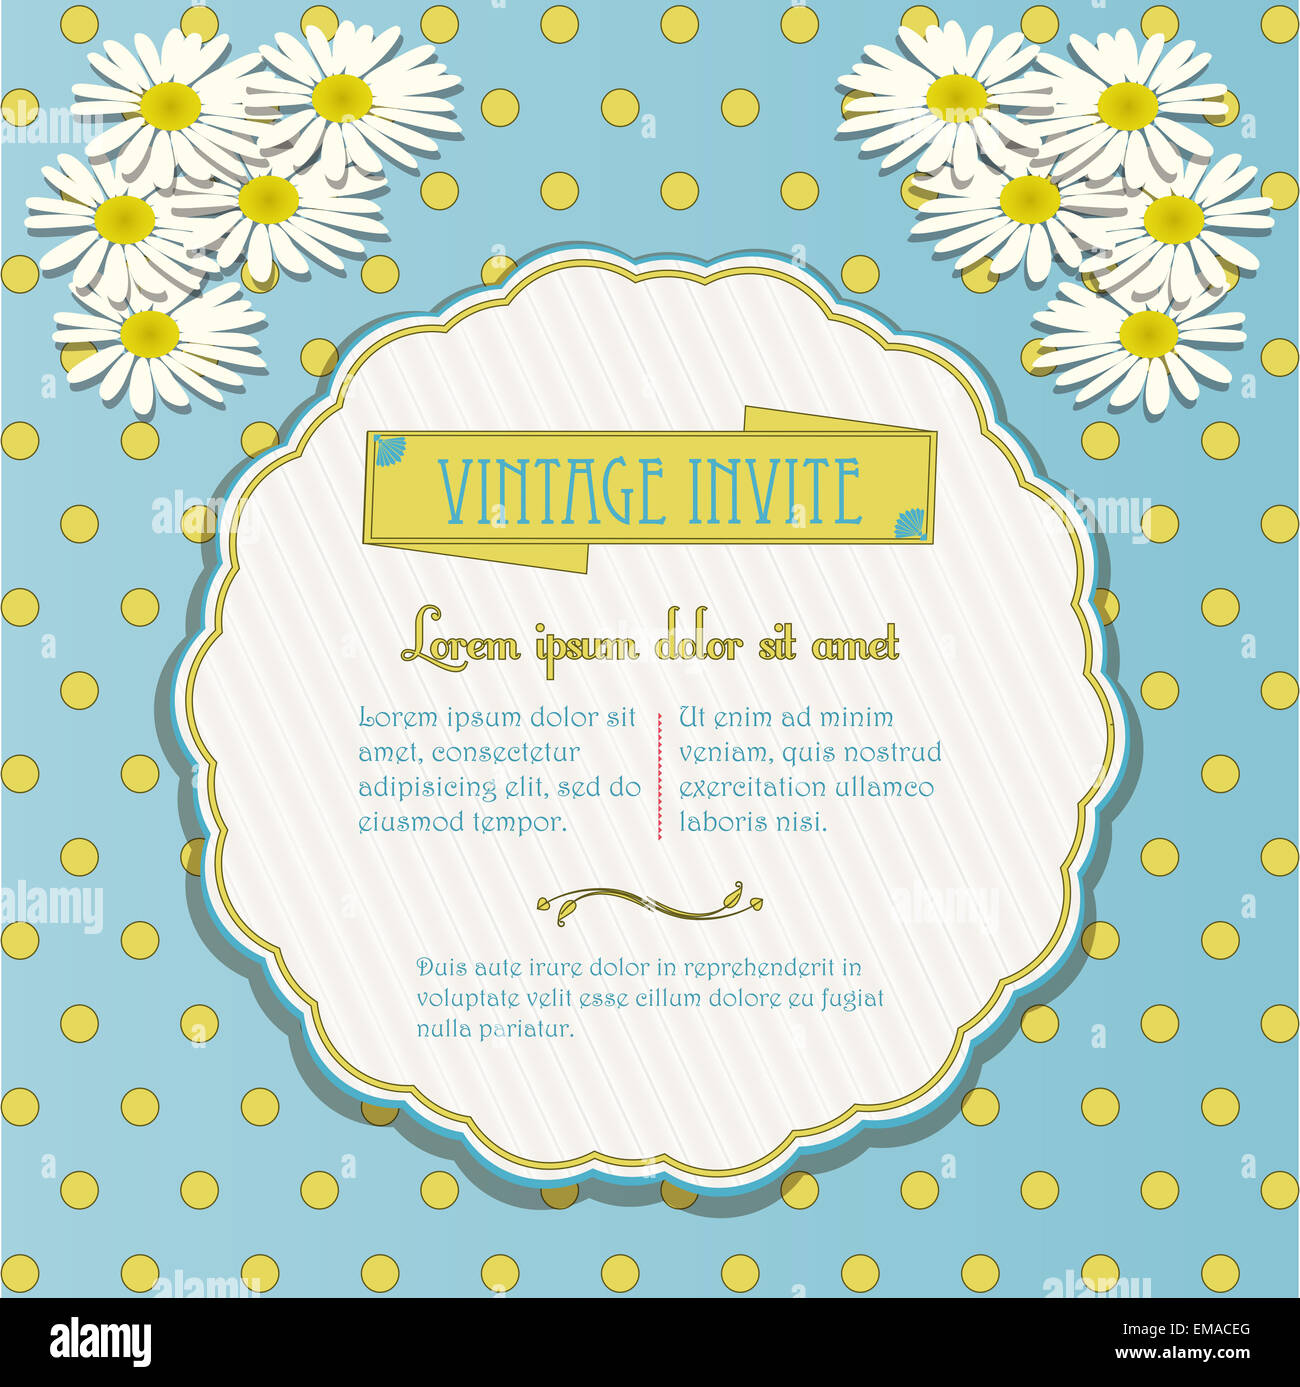 Vintage Invite with Chamomile Flowers on Polka Dot Background - Stock Image